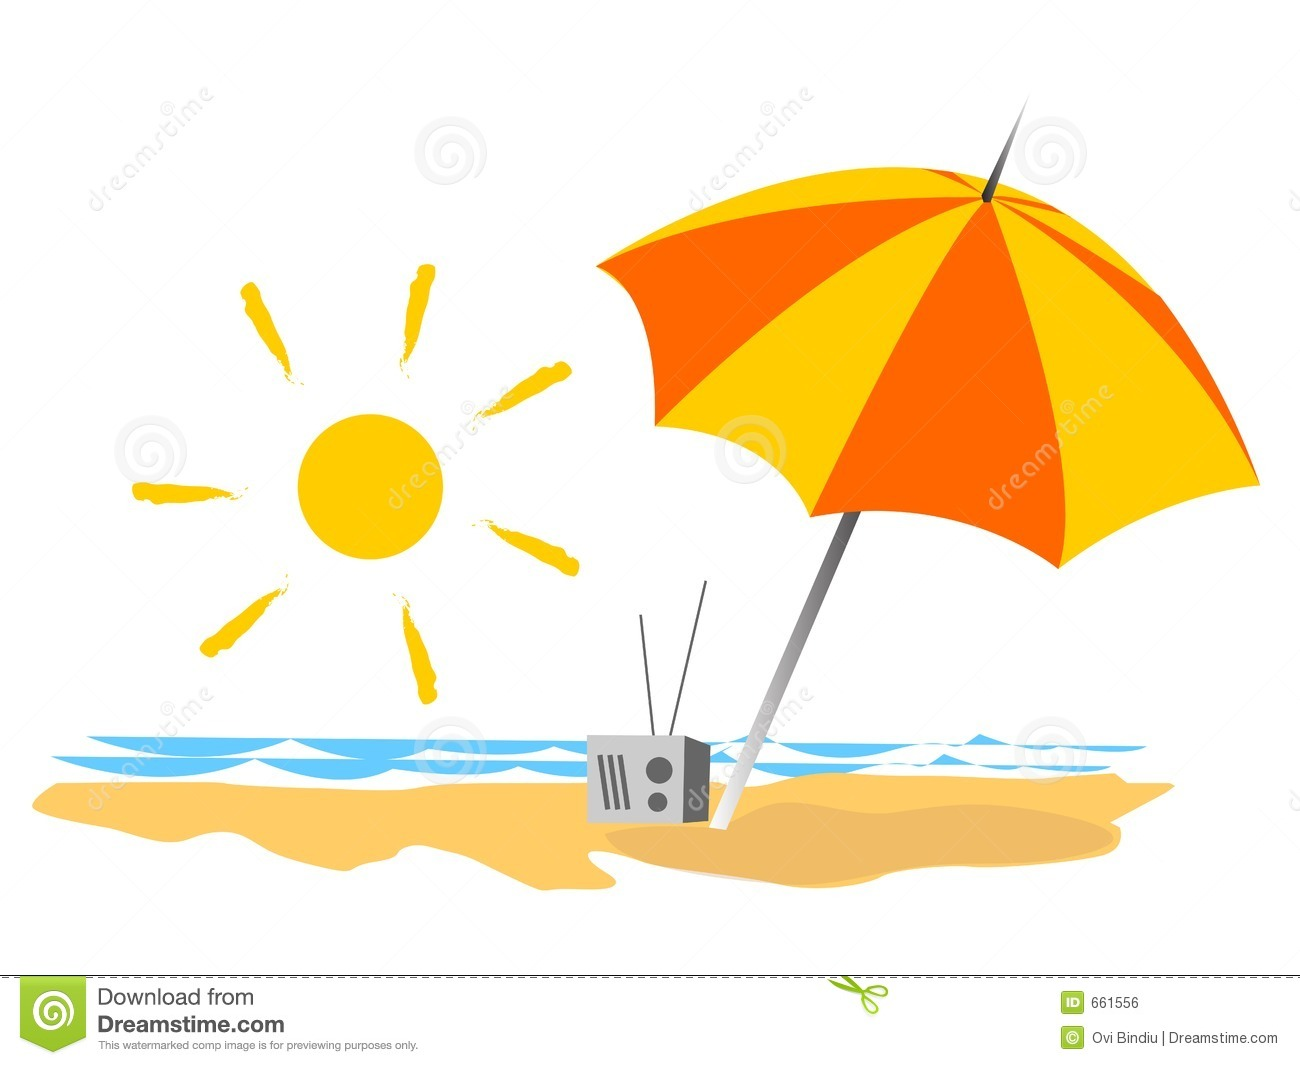 Summer Vacations On The Beach Royalty Free Stock Image - Image: 661556